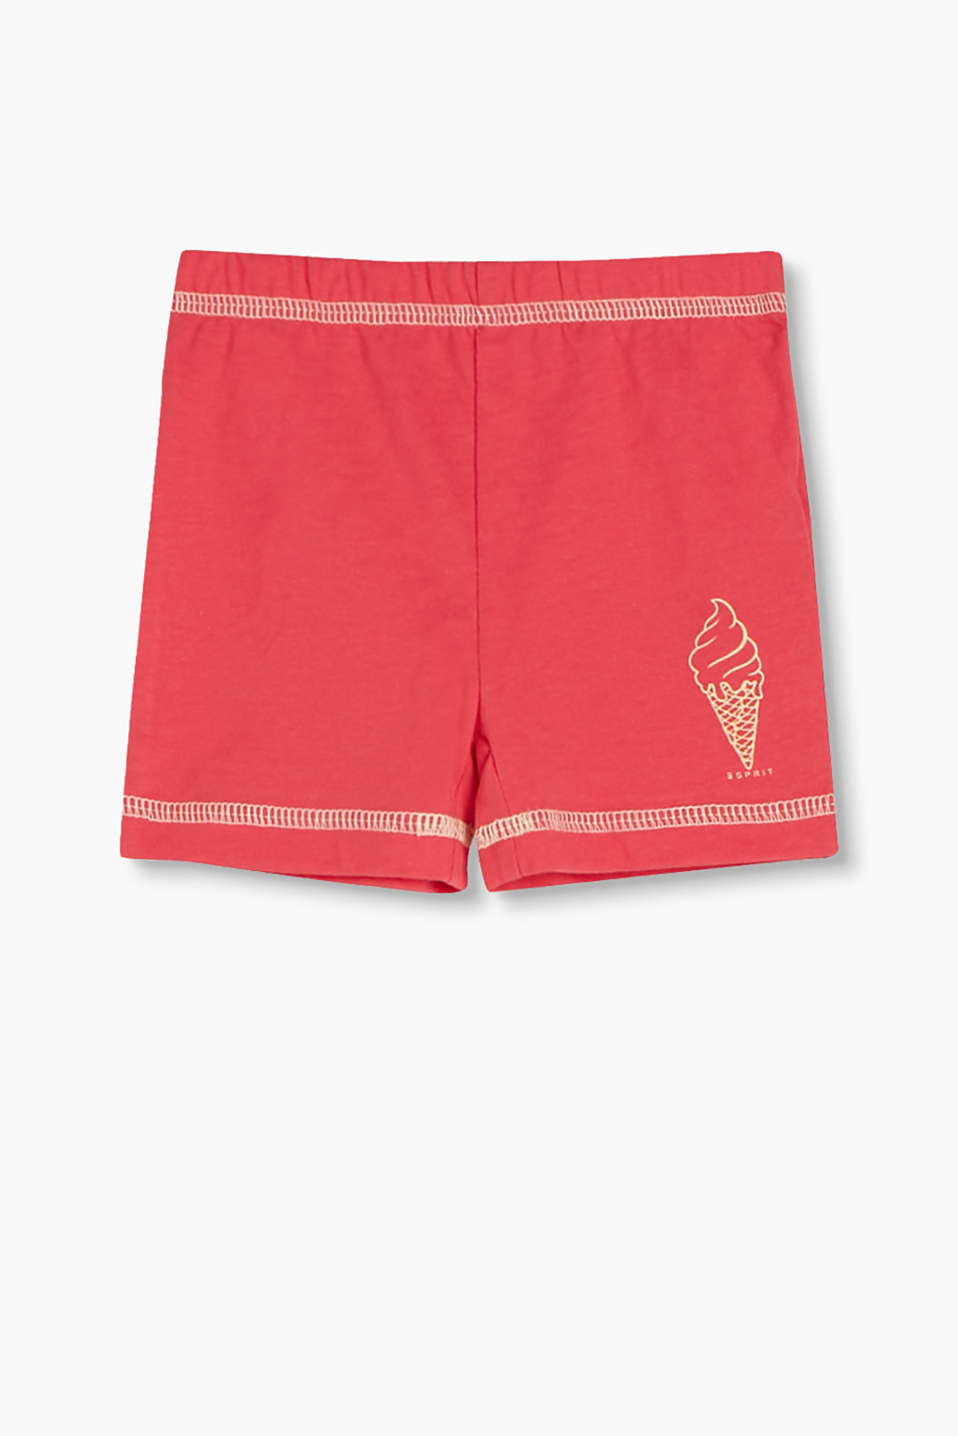 Jersey shorts with an ice cream print and contrasting stitching, 100% cotton